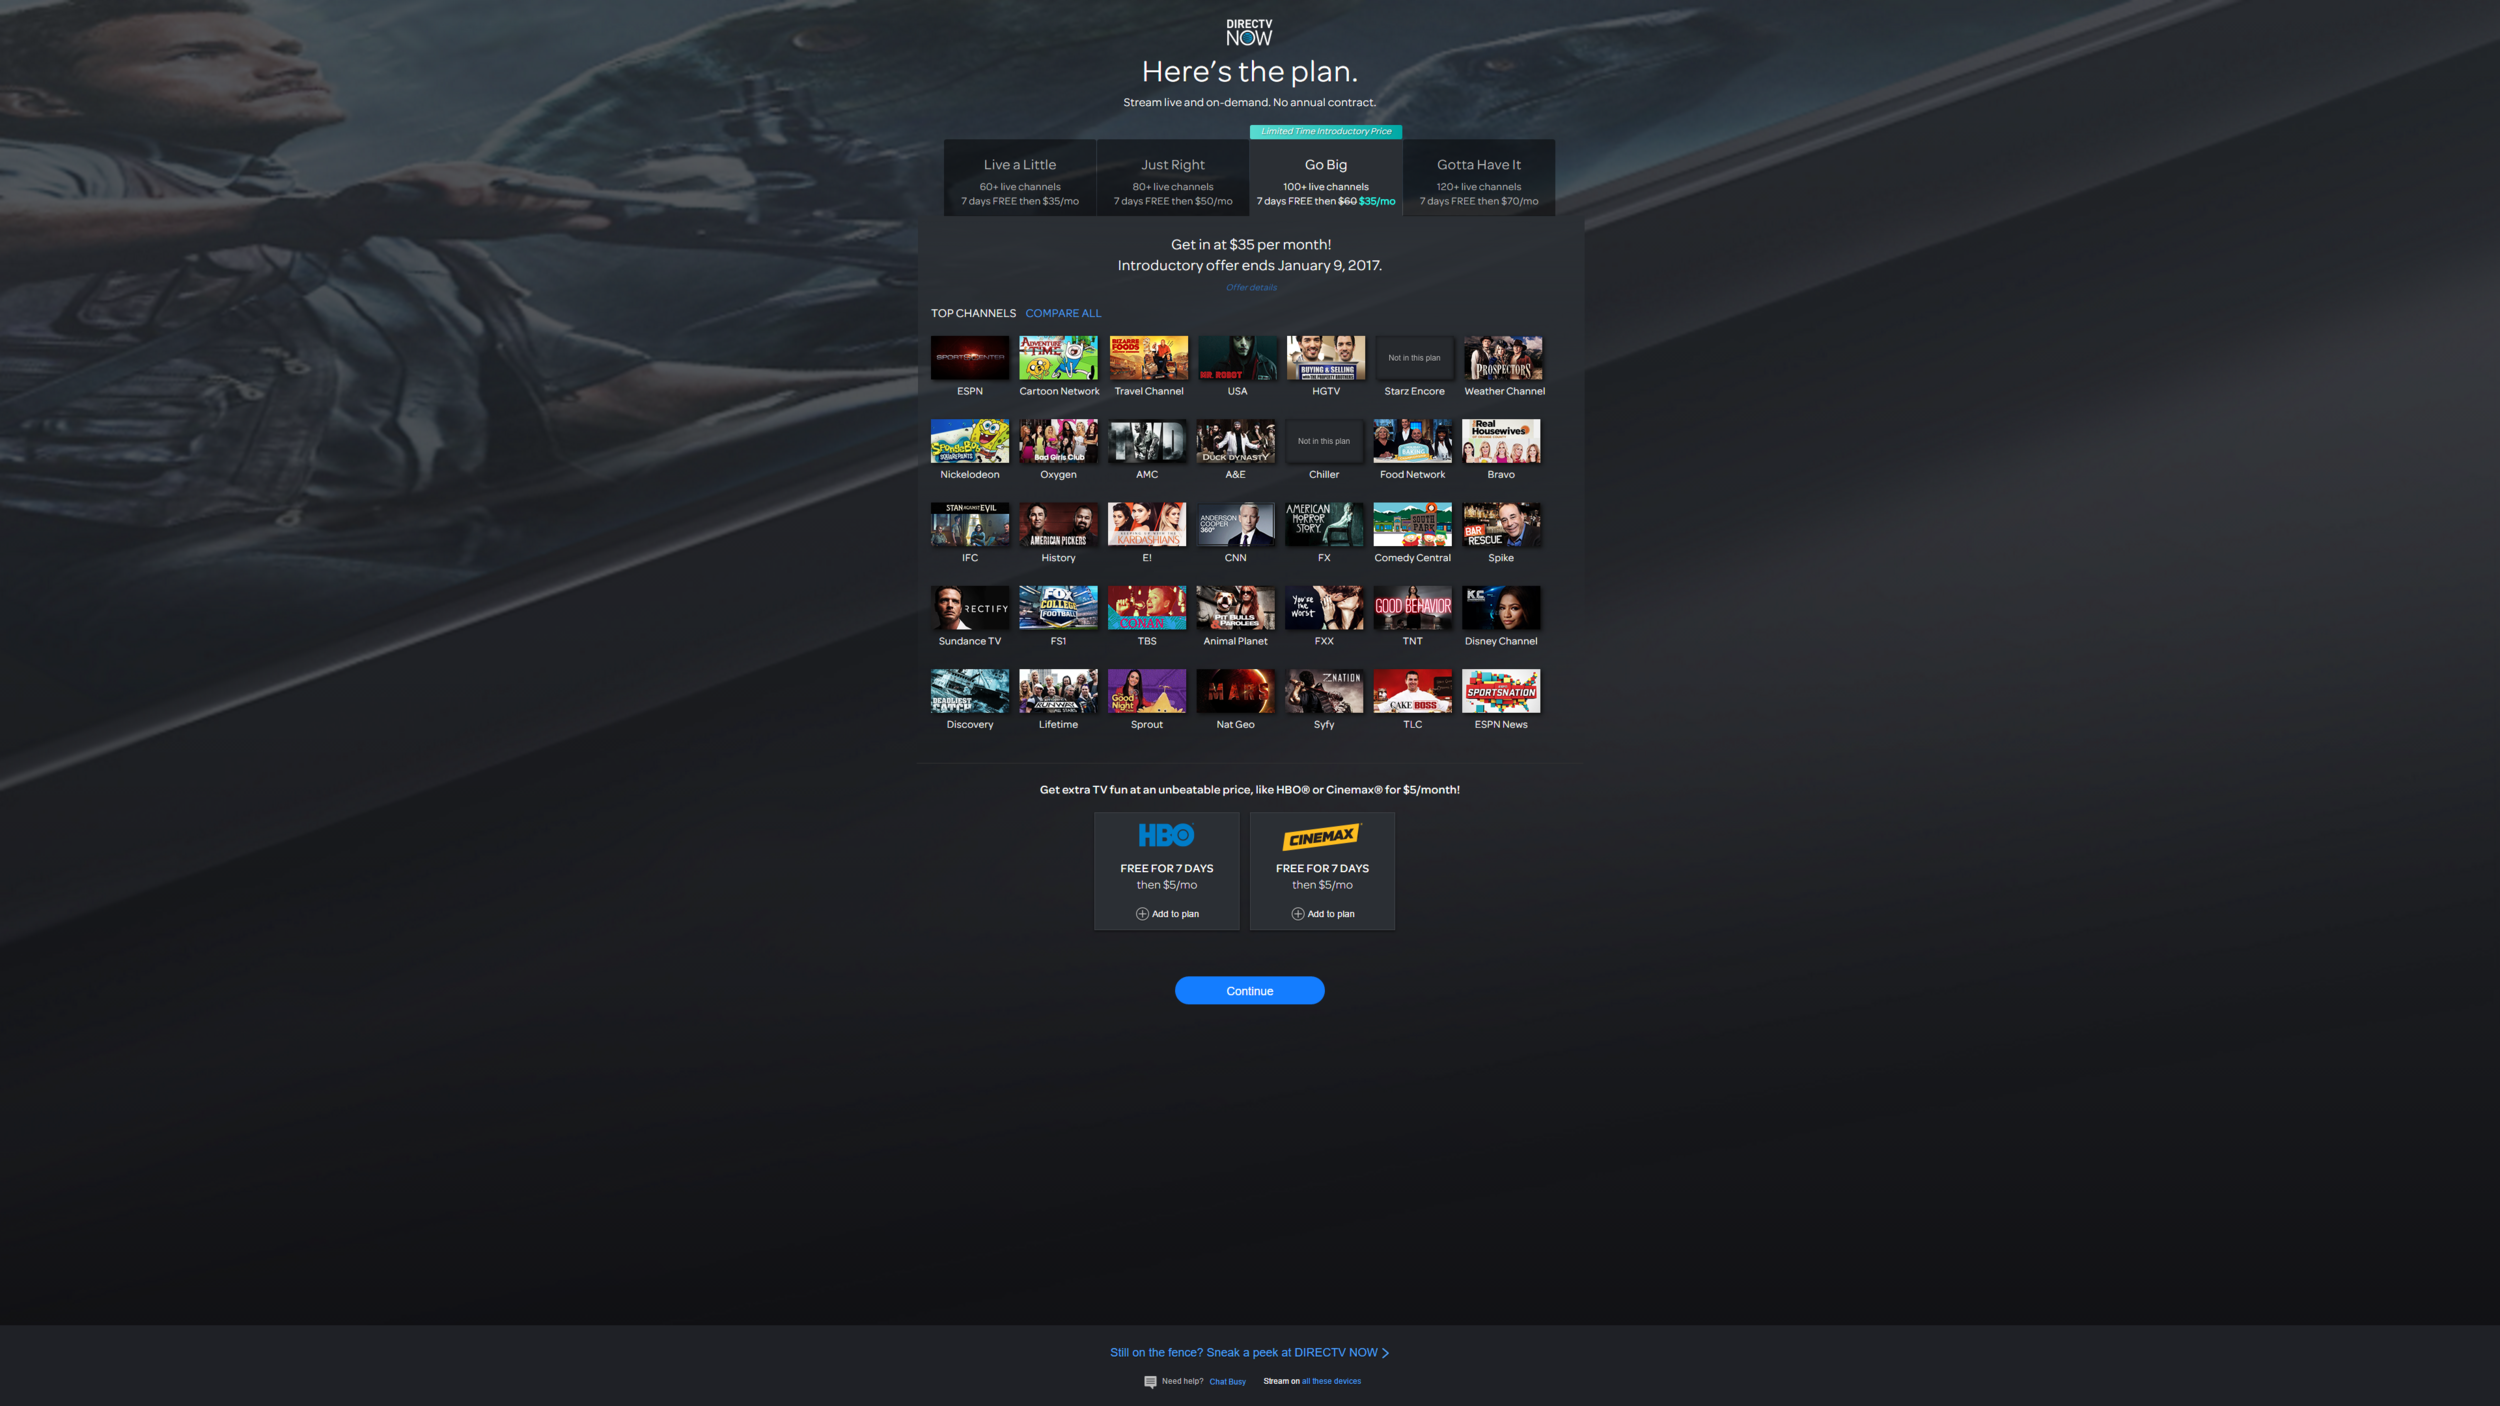 Directv now review cable tv over the internet twistedcurve directv now review cable tv over the internet solutioingenieria Choice Image